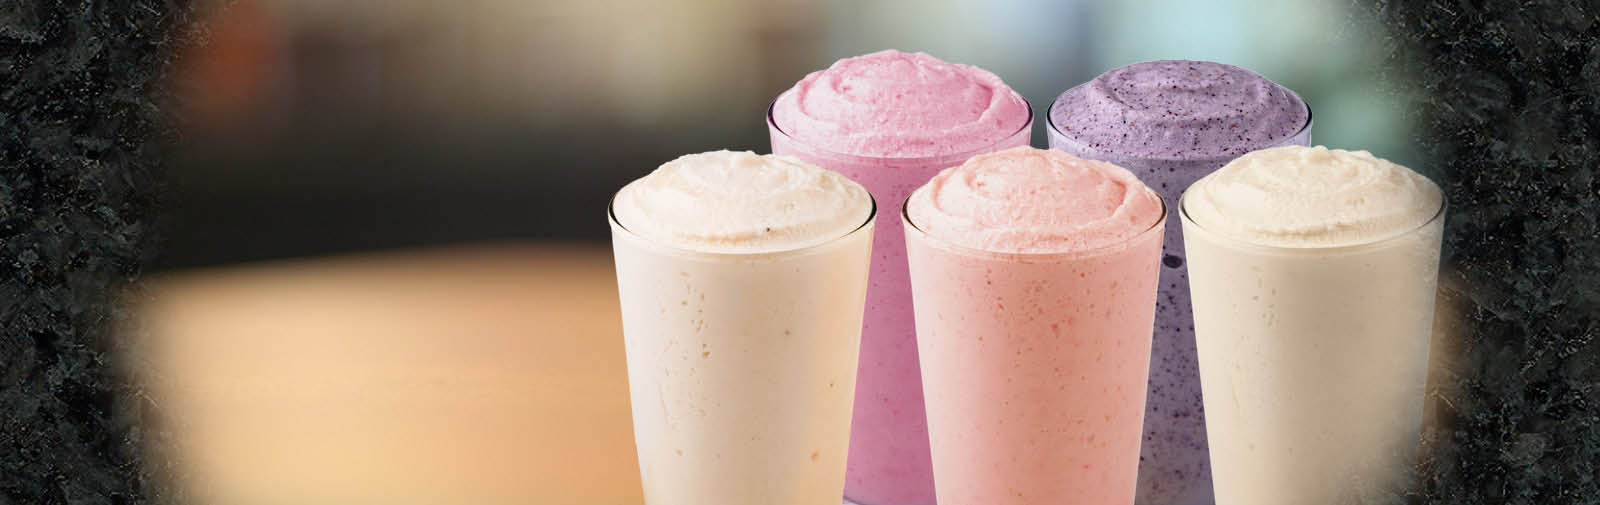 Cold Stone Creamery in Baton Rouge, LA Smoothies Baton Rouge